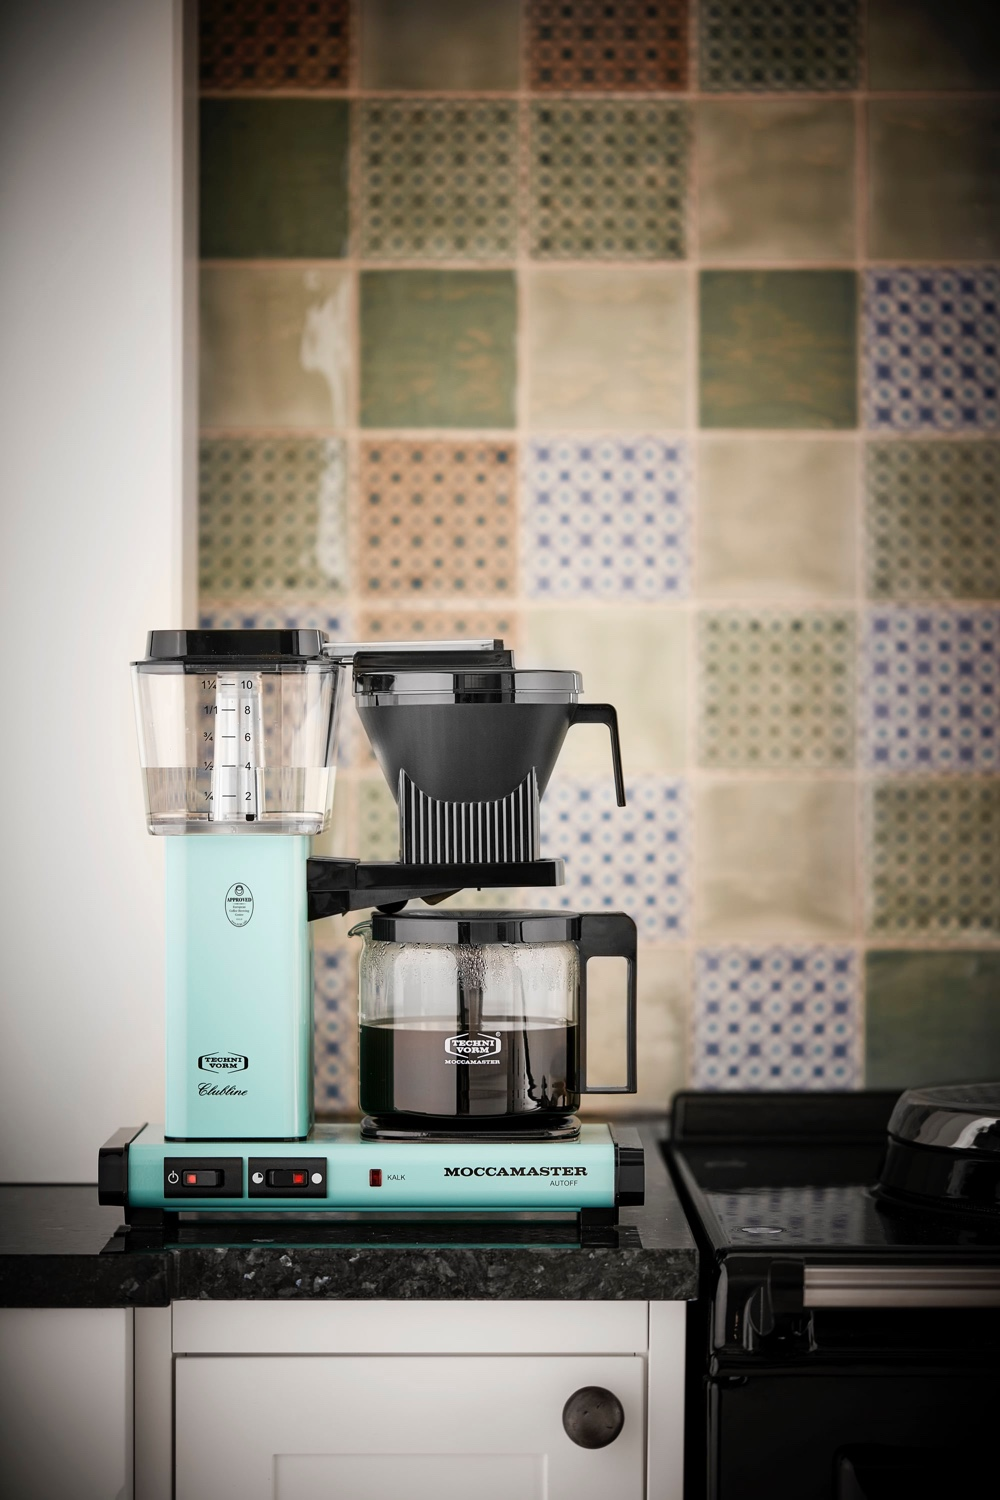 TheMoccamaster KBG 741 AO in turquoise. Image© SØBY´S.